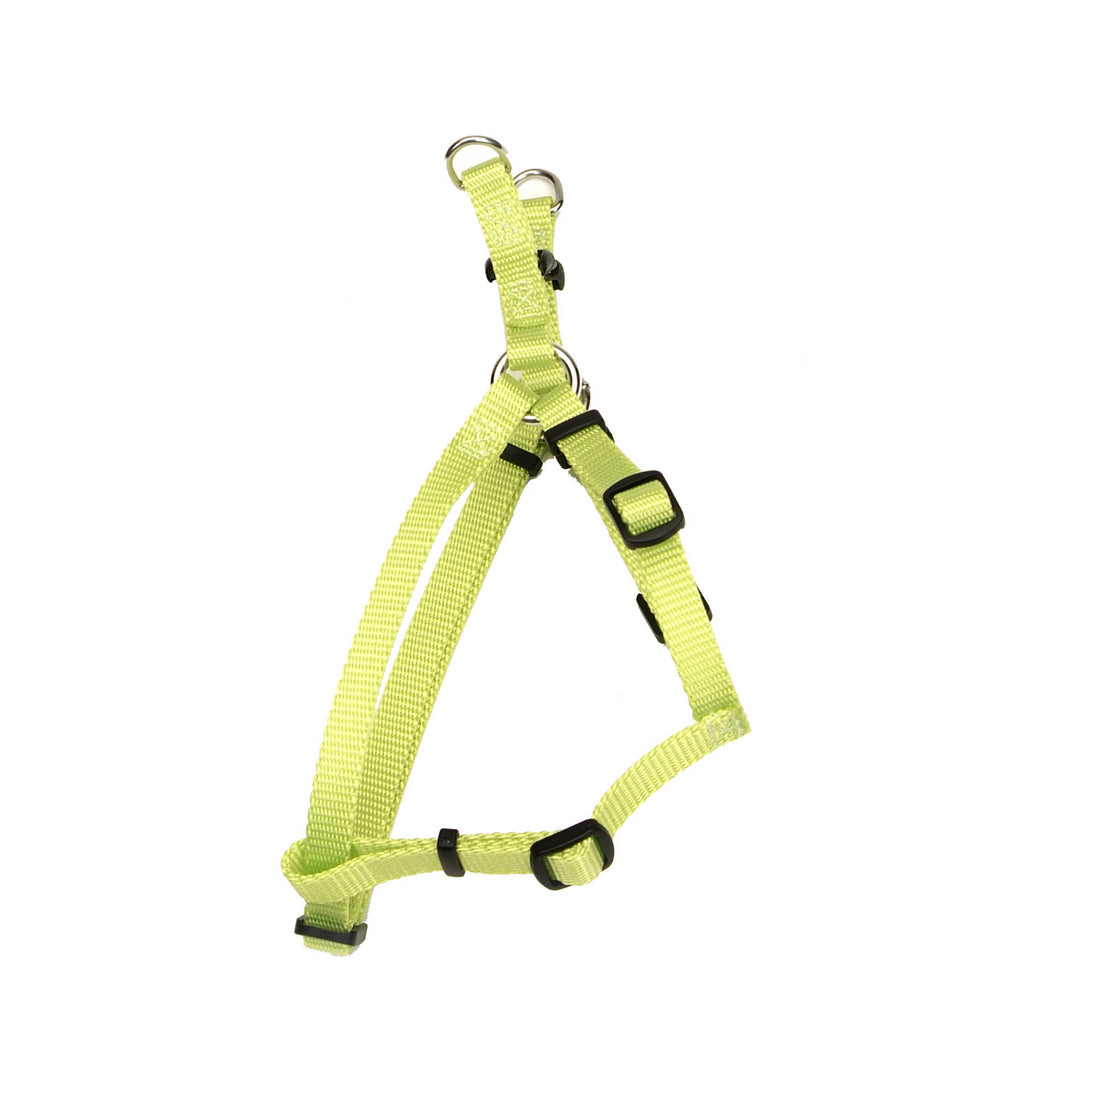 Coastal Comfort Wrap Adjustable Nylon Harness Medium Lime